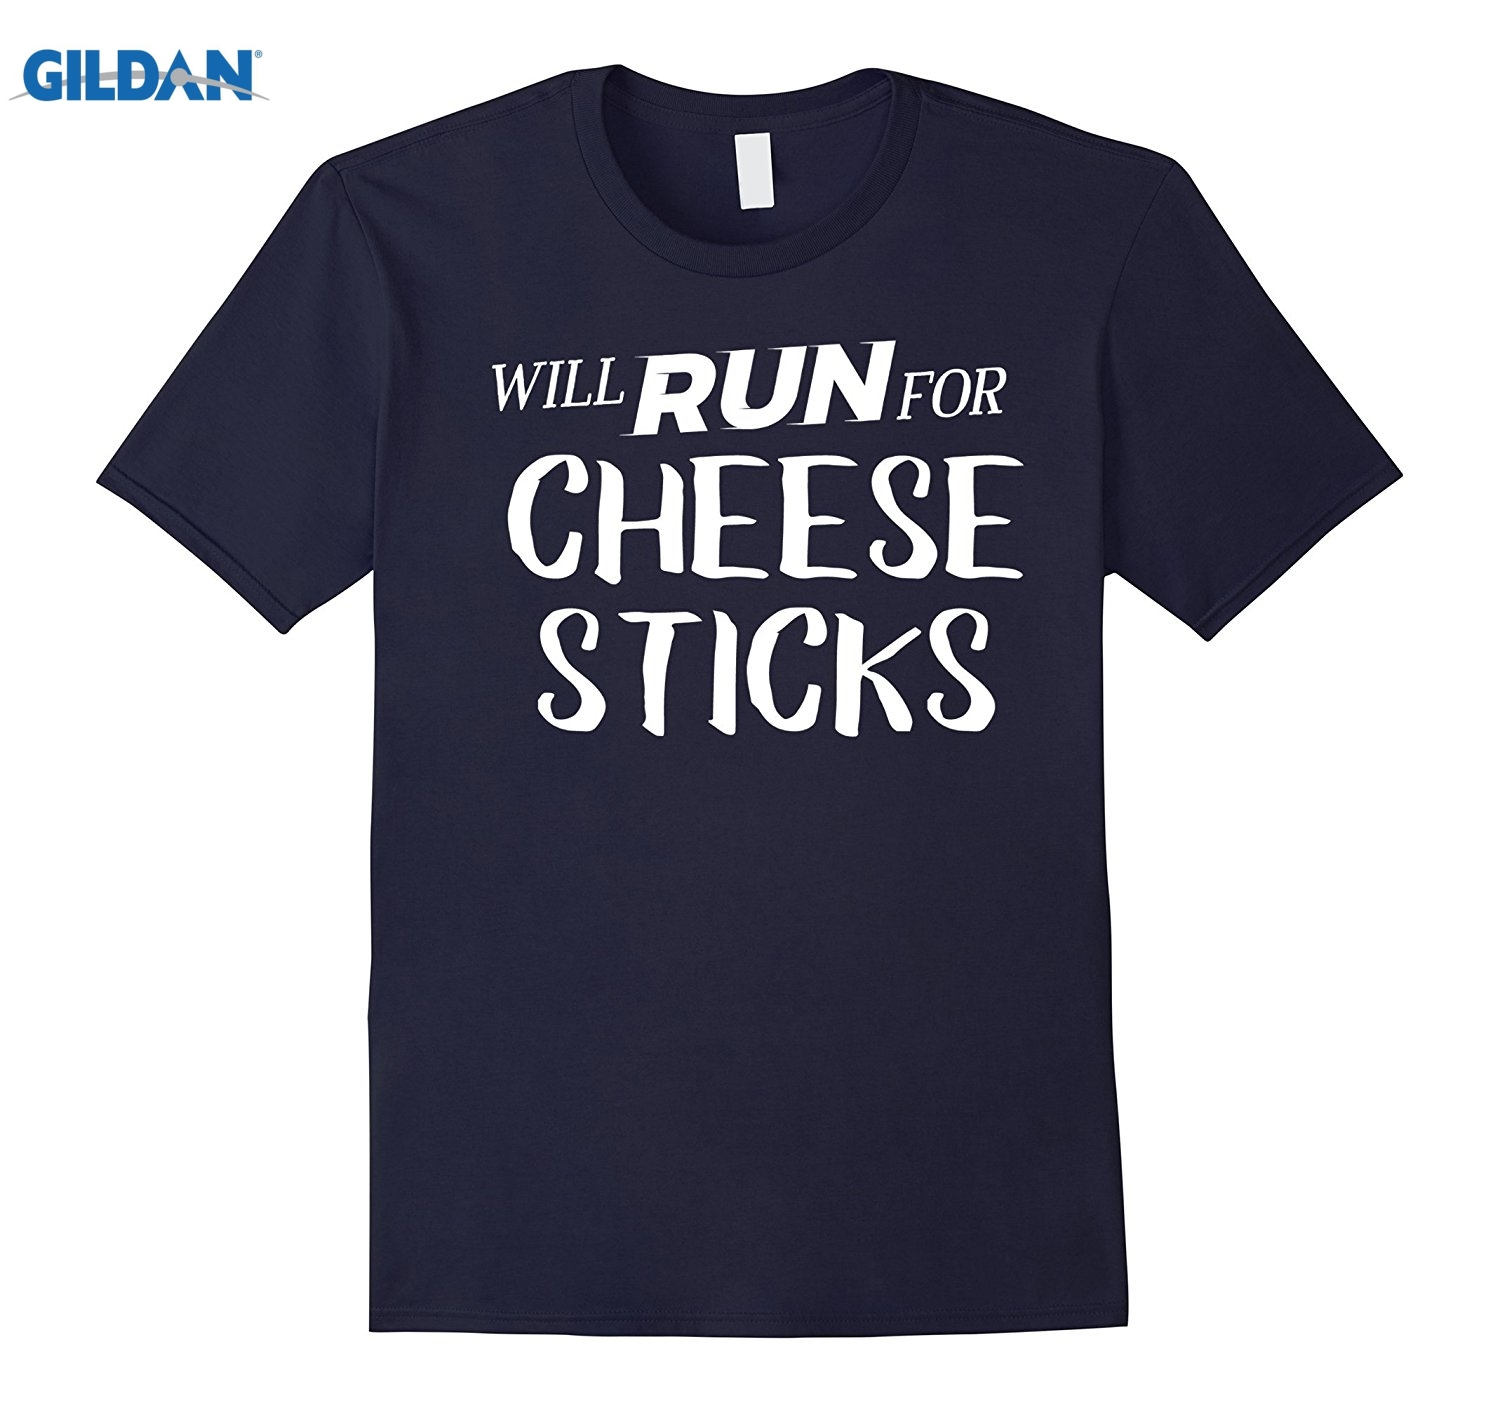 GILDAN Will for Cheese Sticks - Funny Foodie T-Shirt for Runner Mothers Day Ms. T-shirt sunglasses women T-shirt